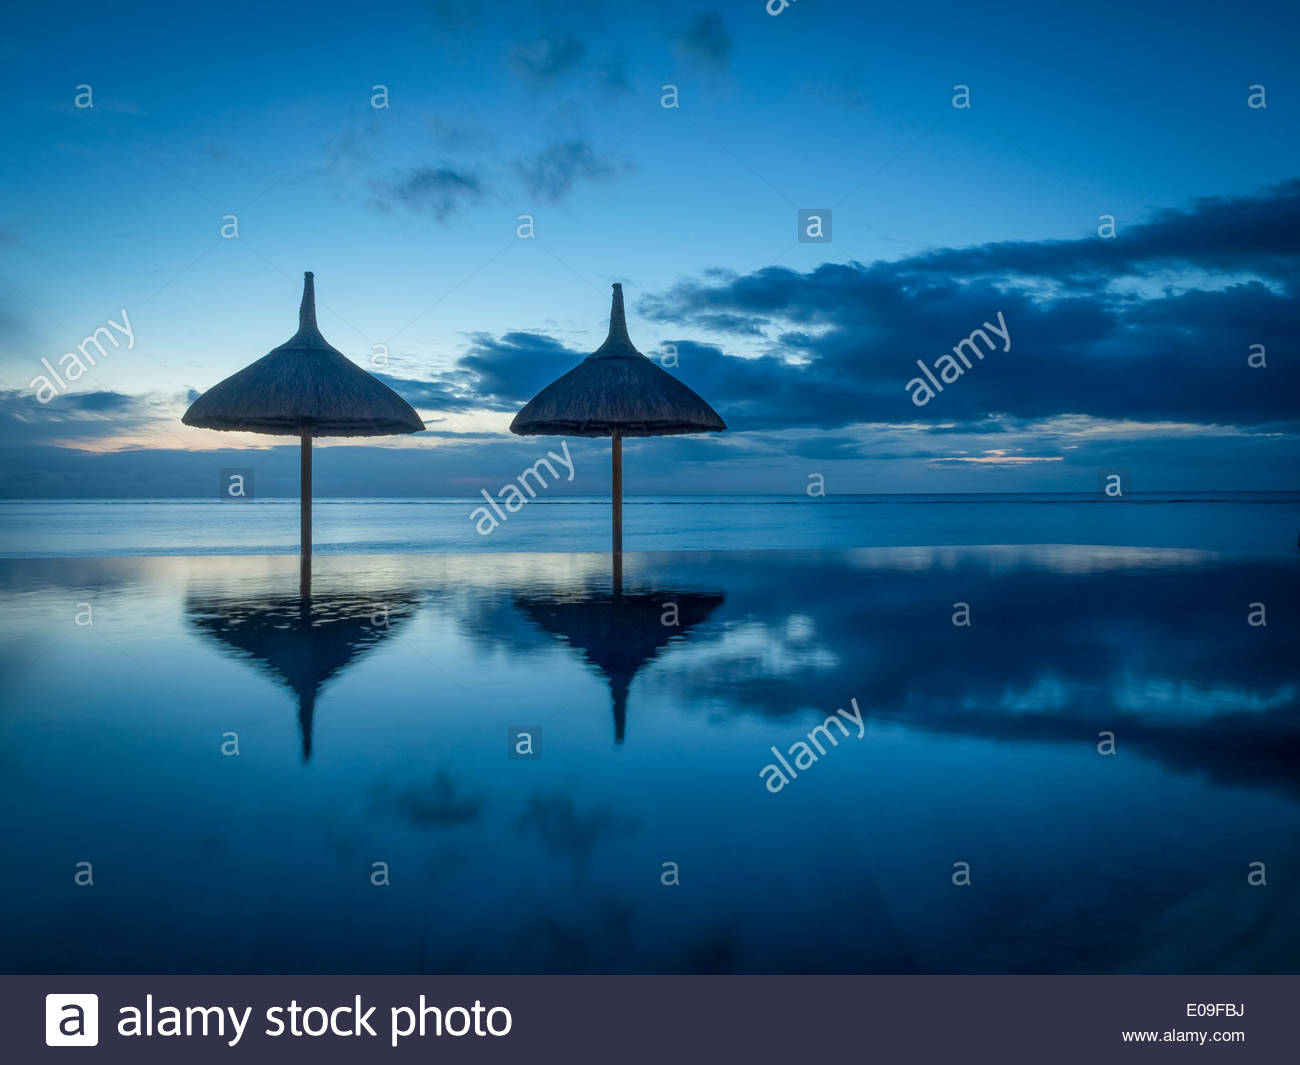 Mauritius, La Preneuse, two sunshades at swimming pool in front of the sea - Stock Image